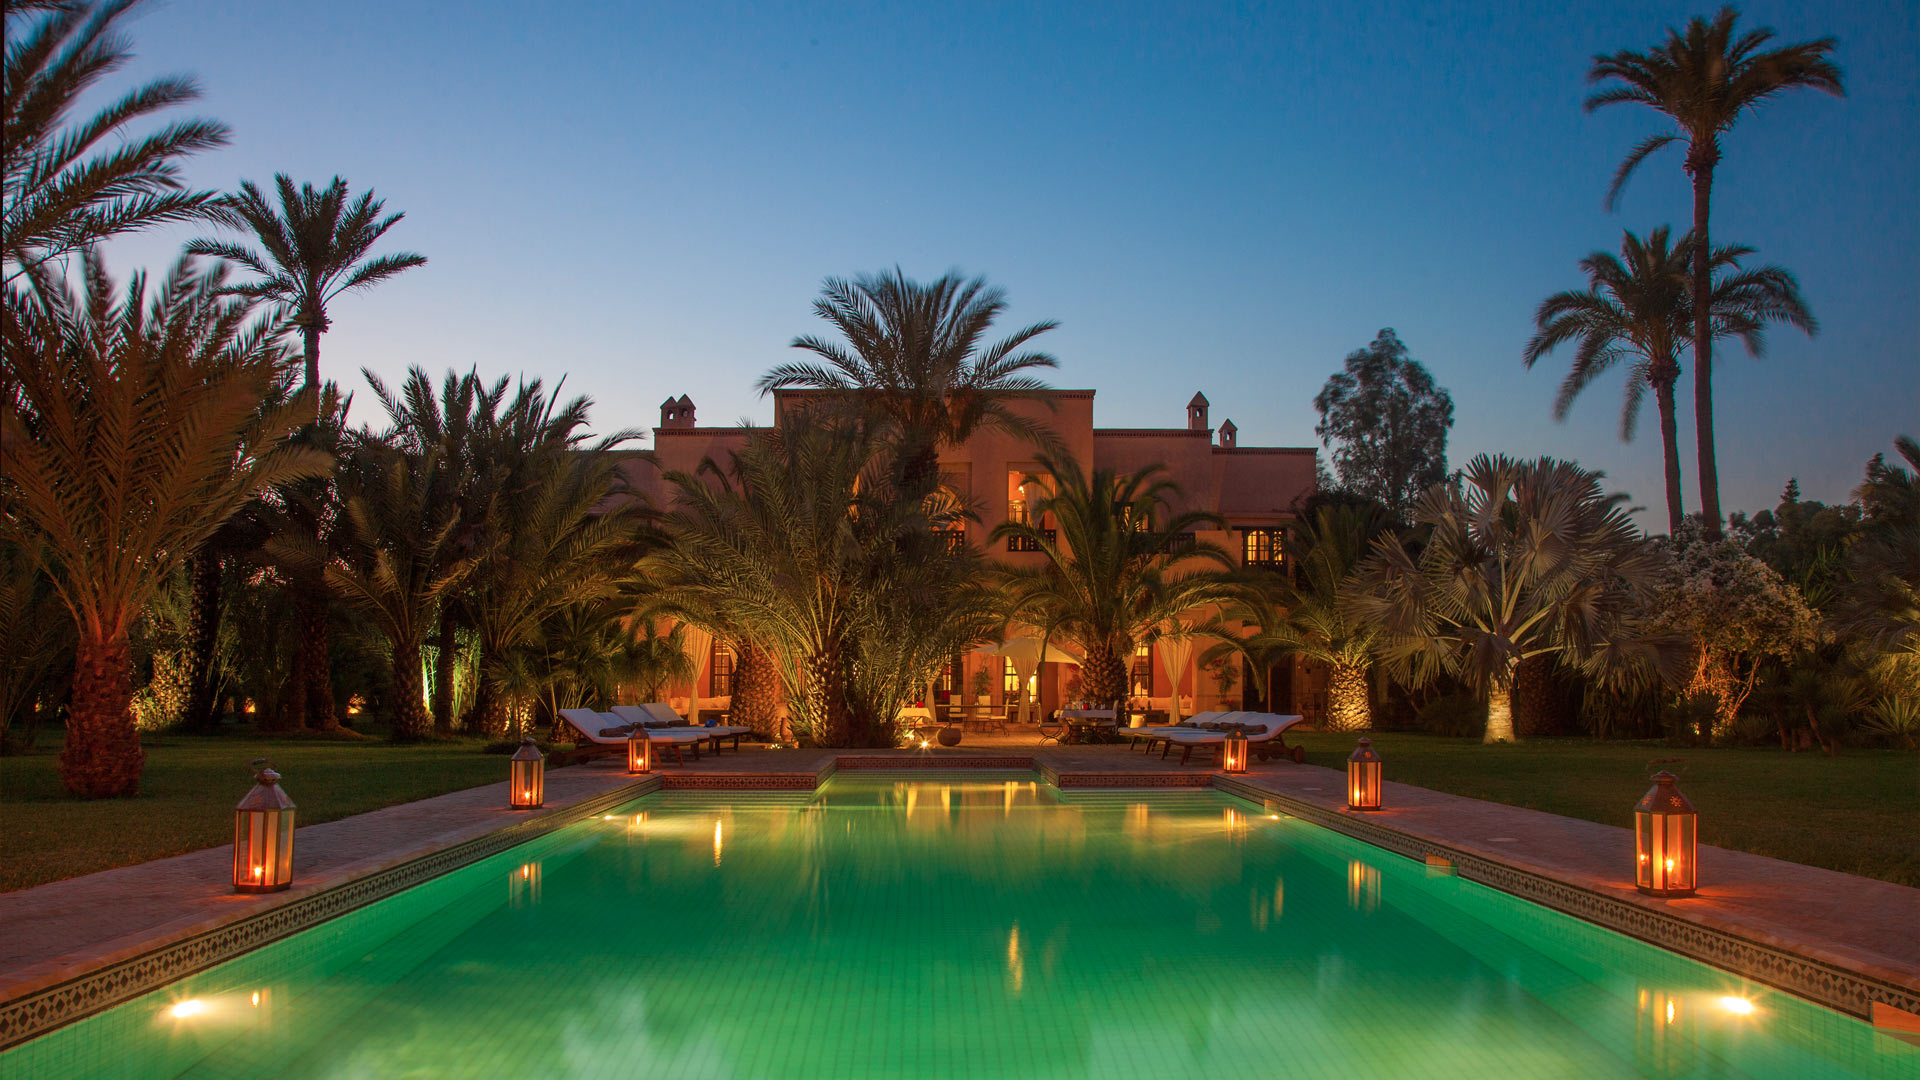 Villa Villa Palmeraie 32, Location à Marrakech